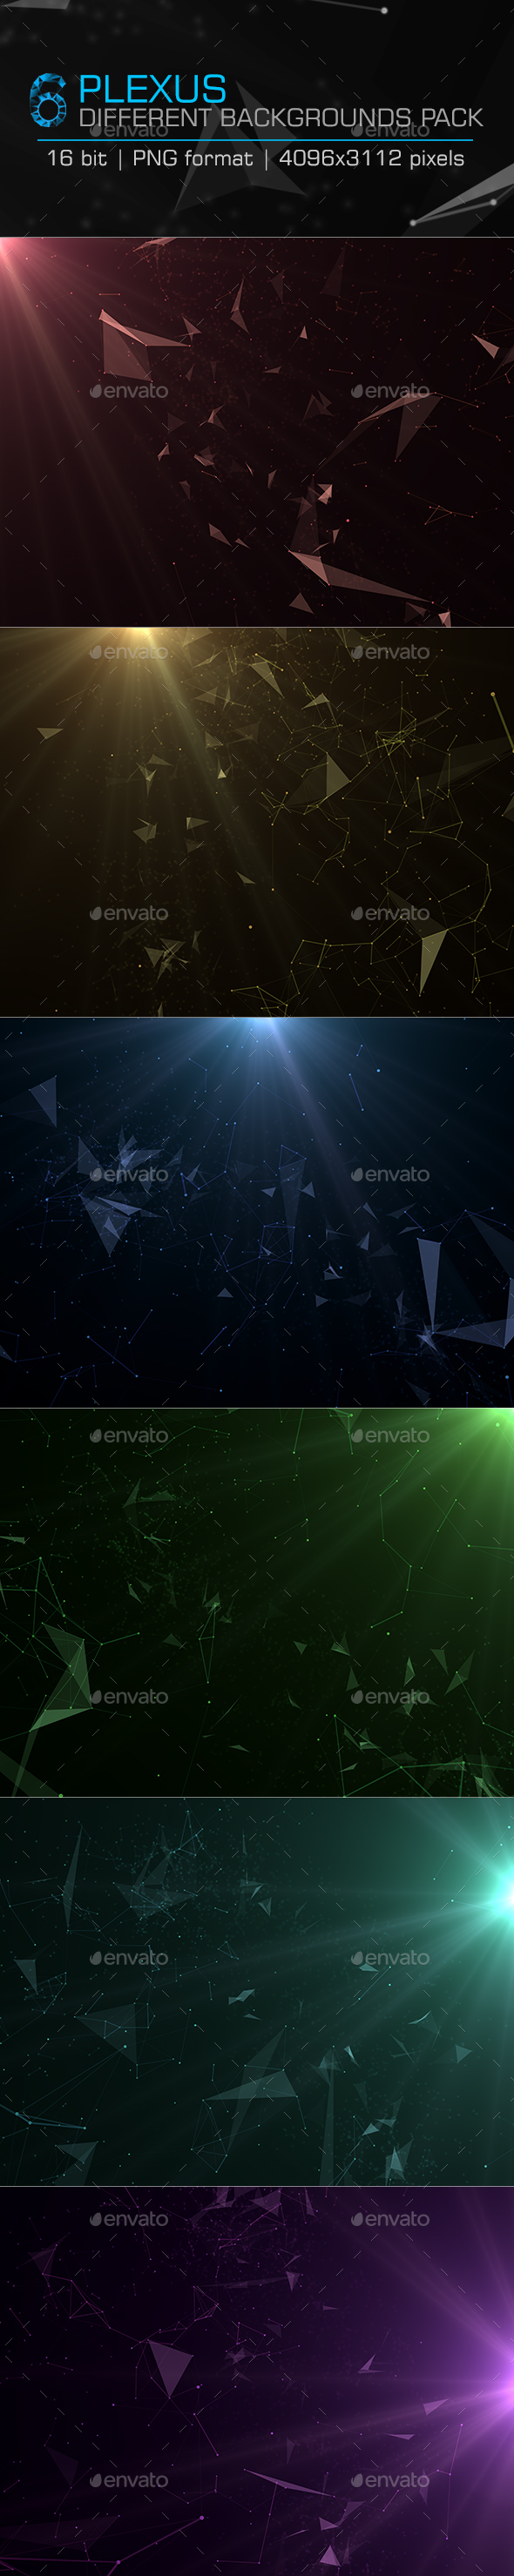 Plexus Backgrounds Pack-1 - Abstract Backgrounds